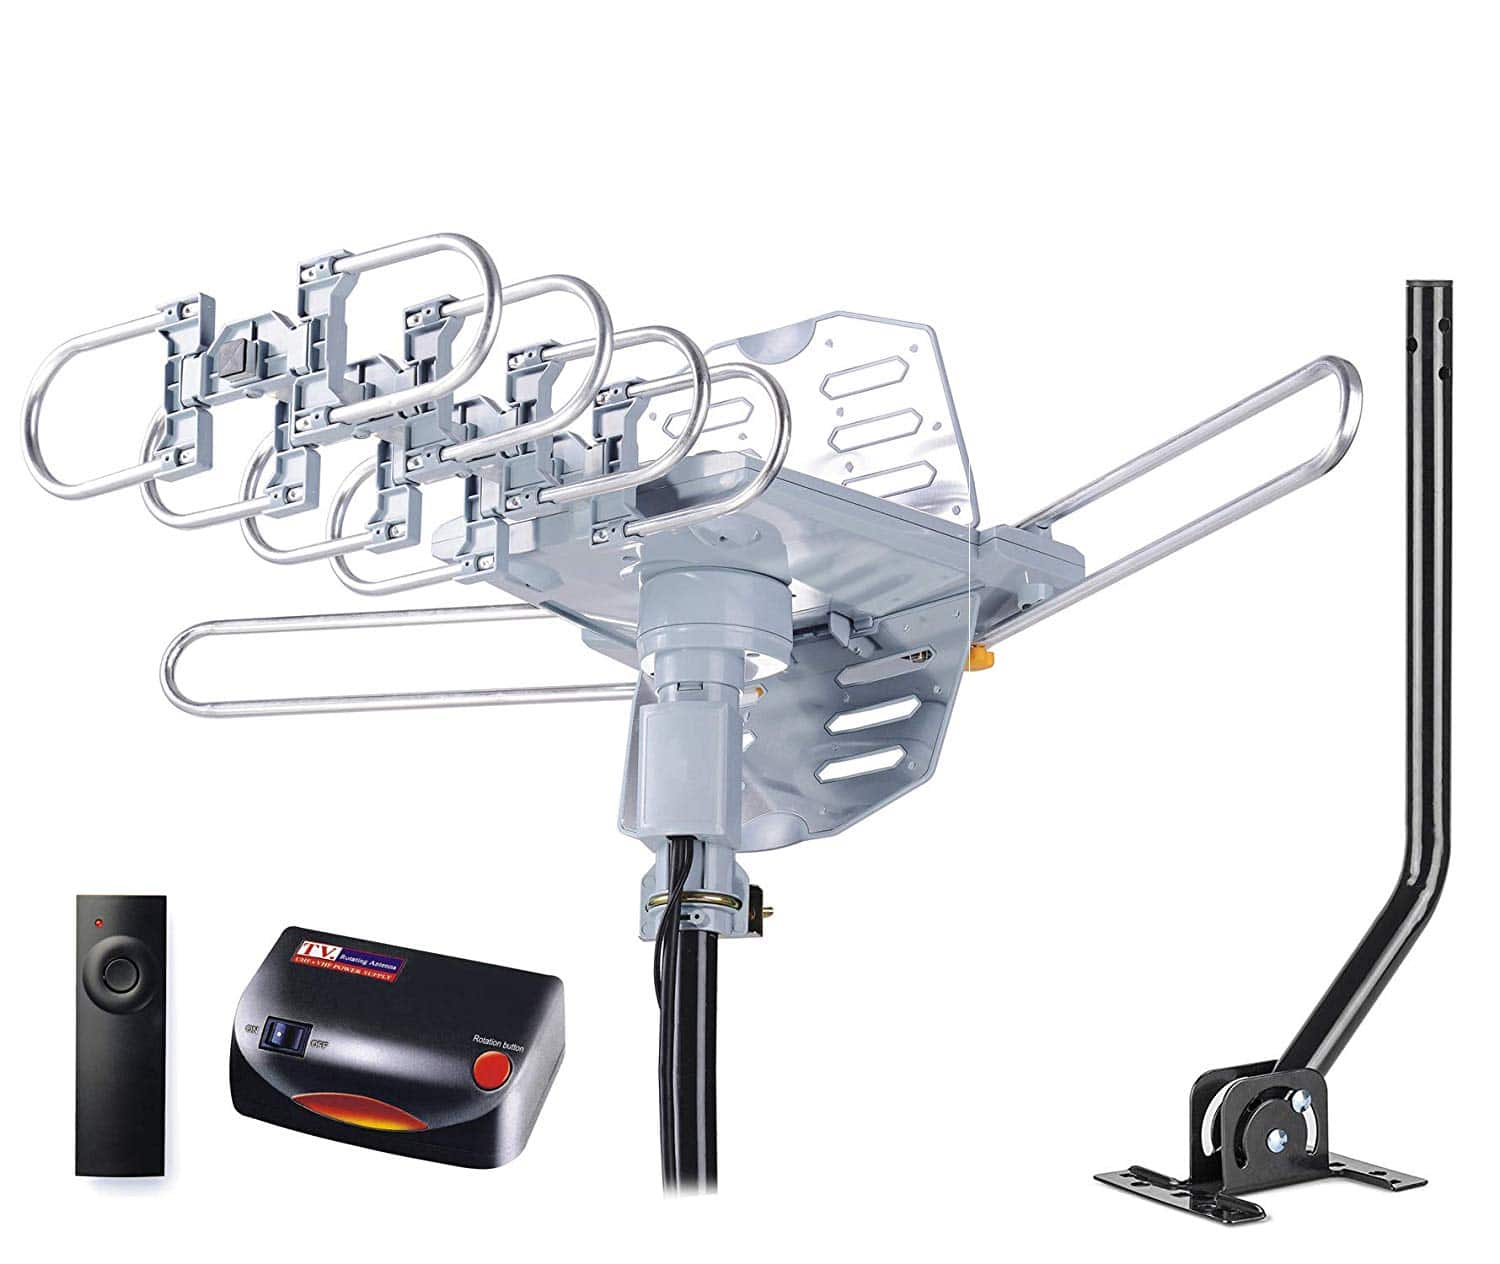 pingbingding HDTV Antenna Amplified Digital Outdoor Antenna with Mounting Pole $28.19